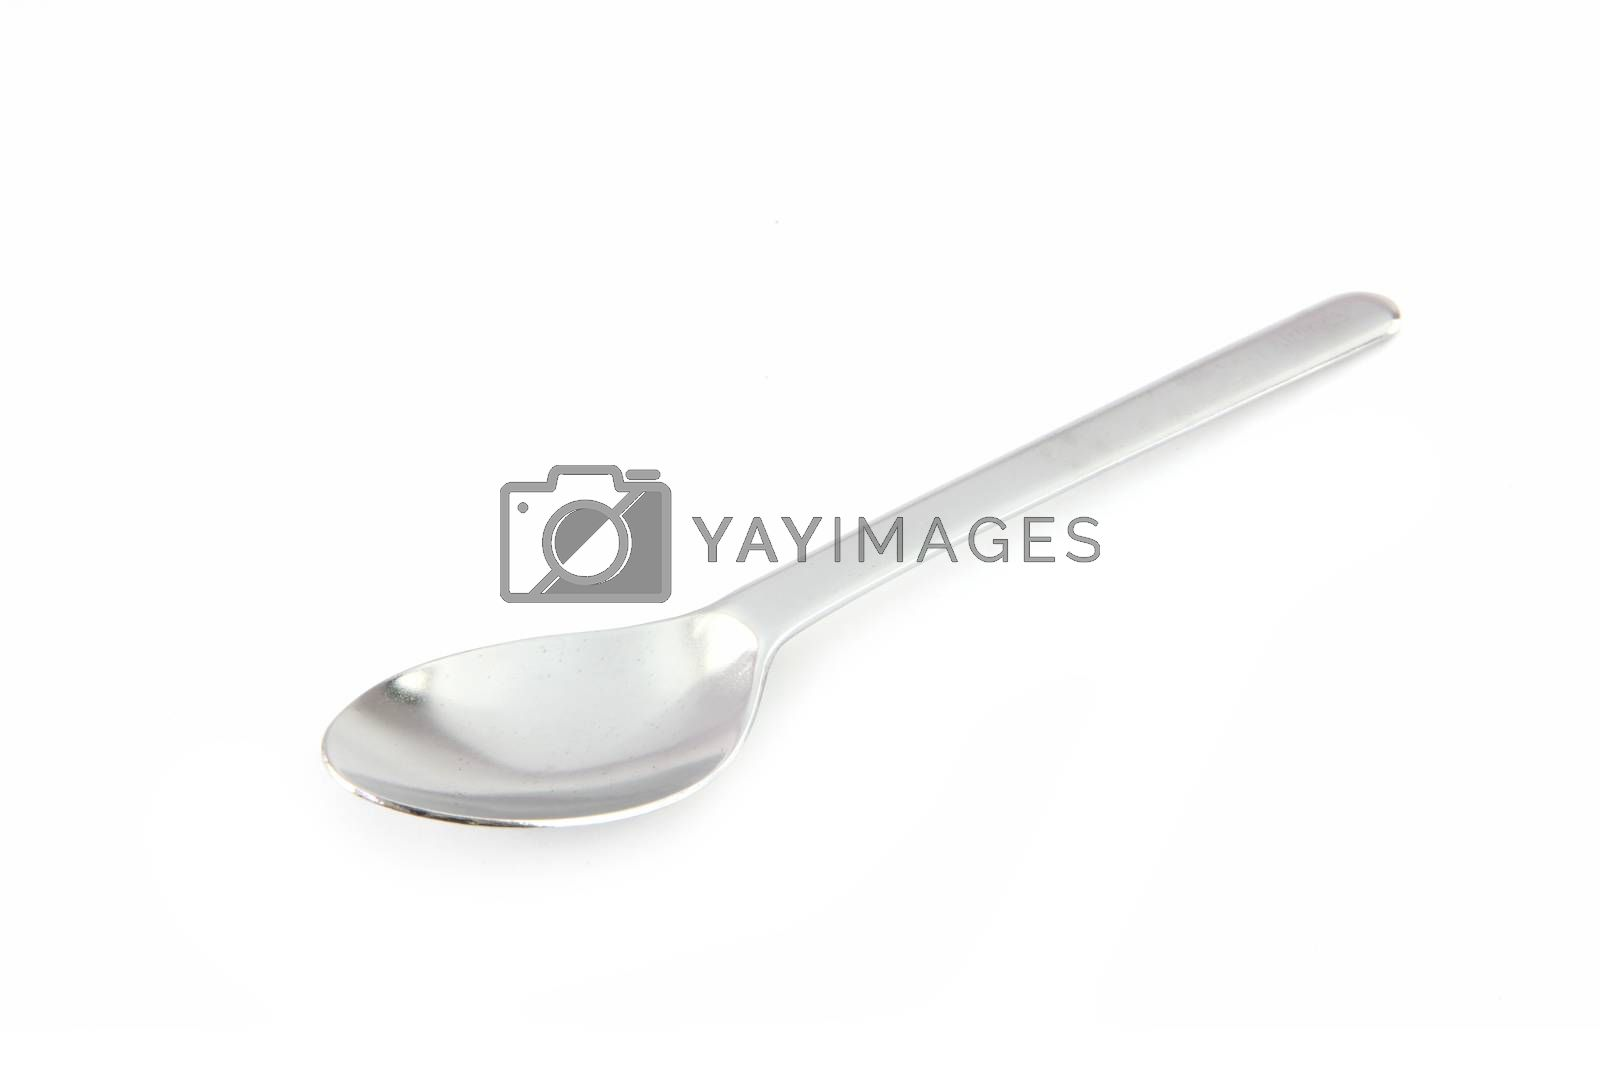 Stainless steel spoon on white background.